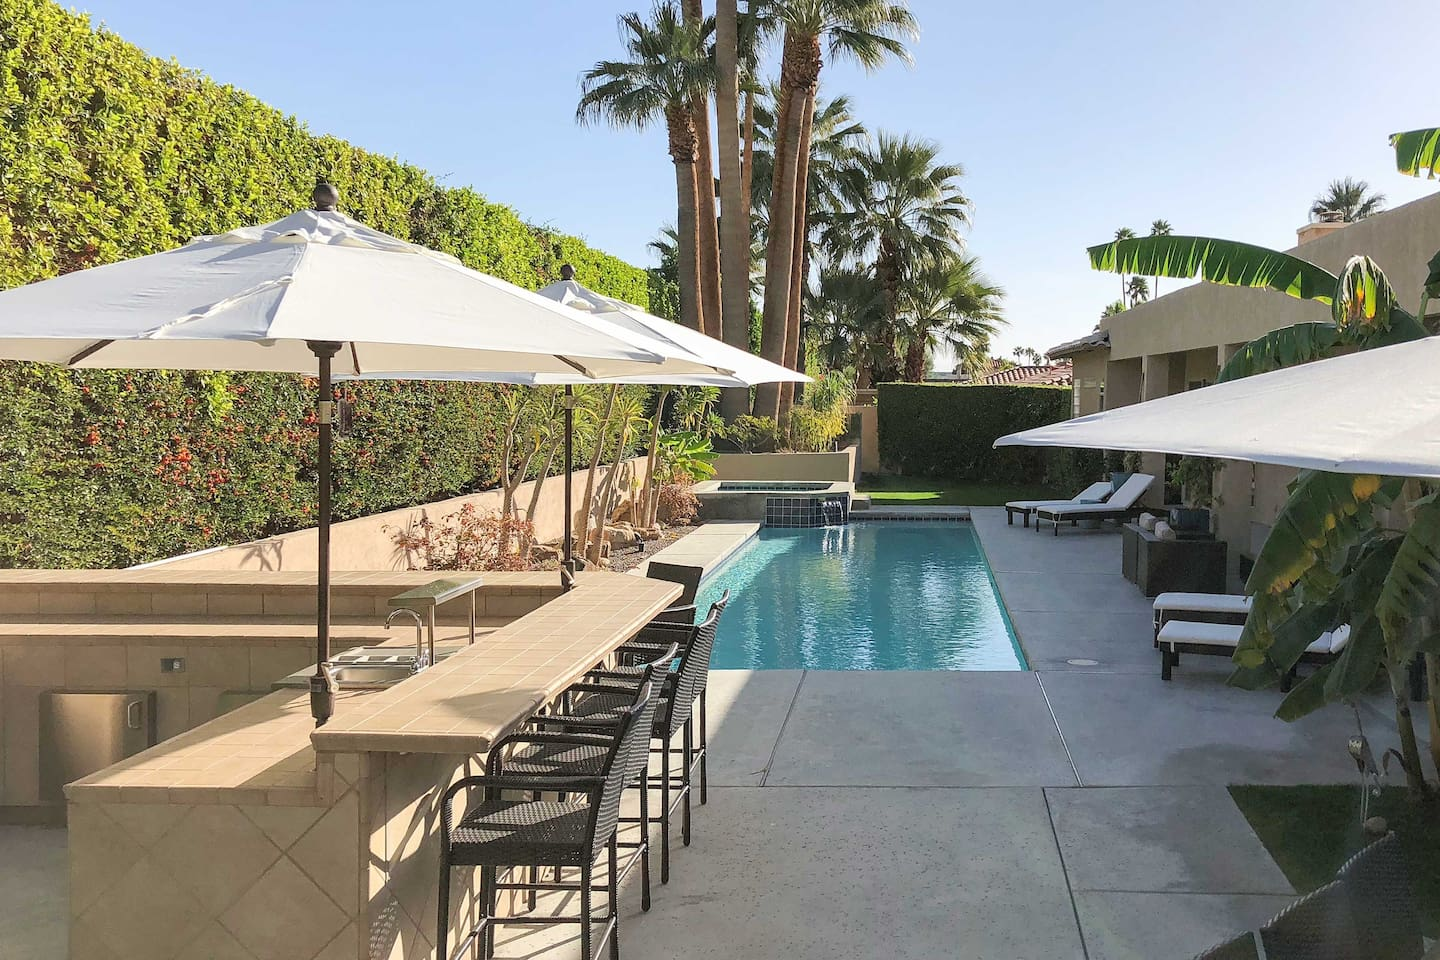 Enjoy a luxury getaway when you stay at this Palm Springs vacation rental house.